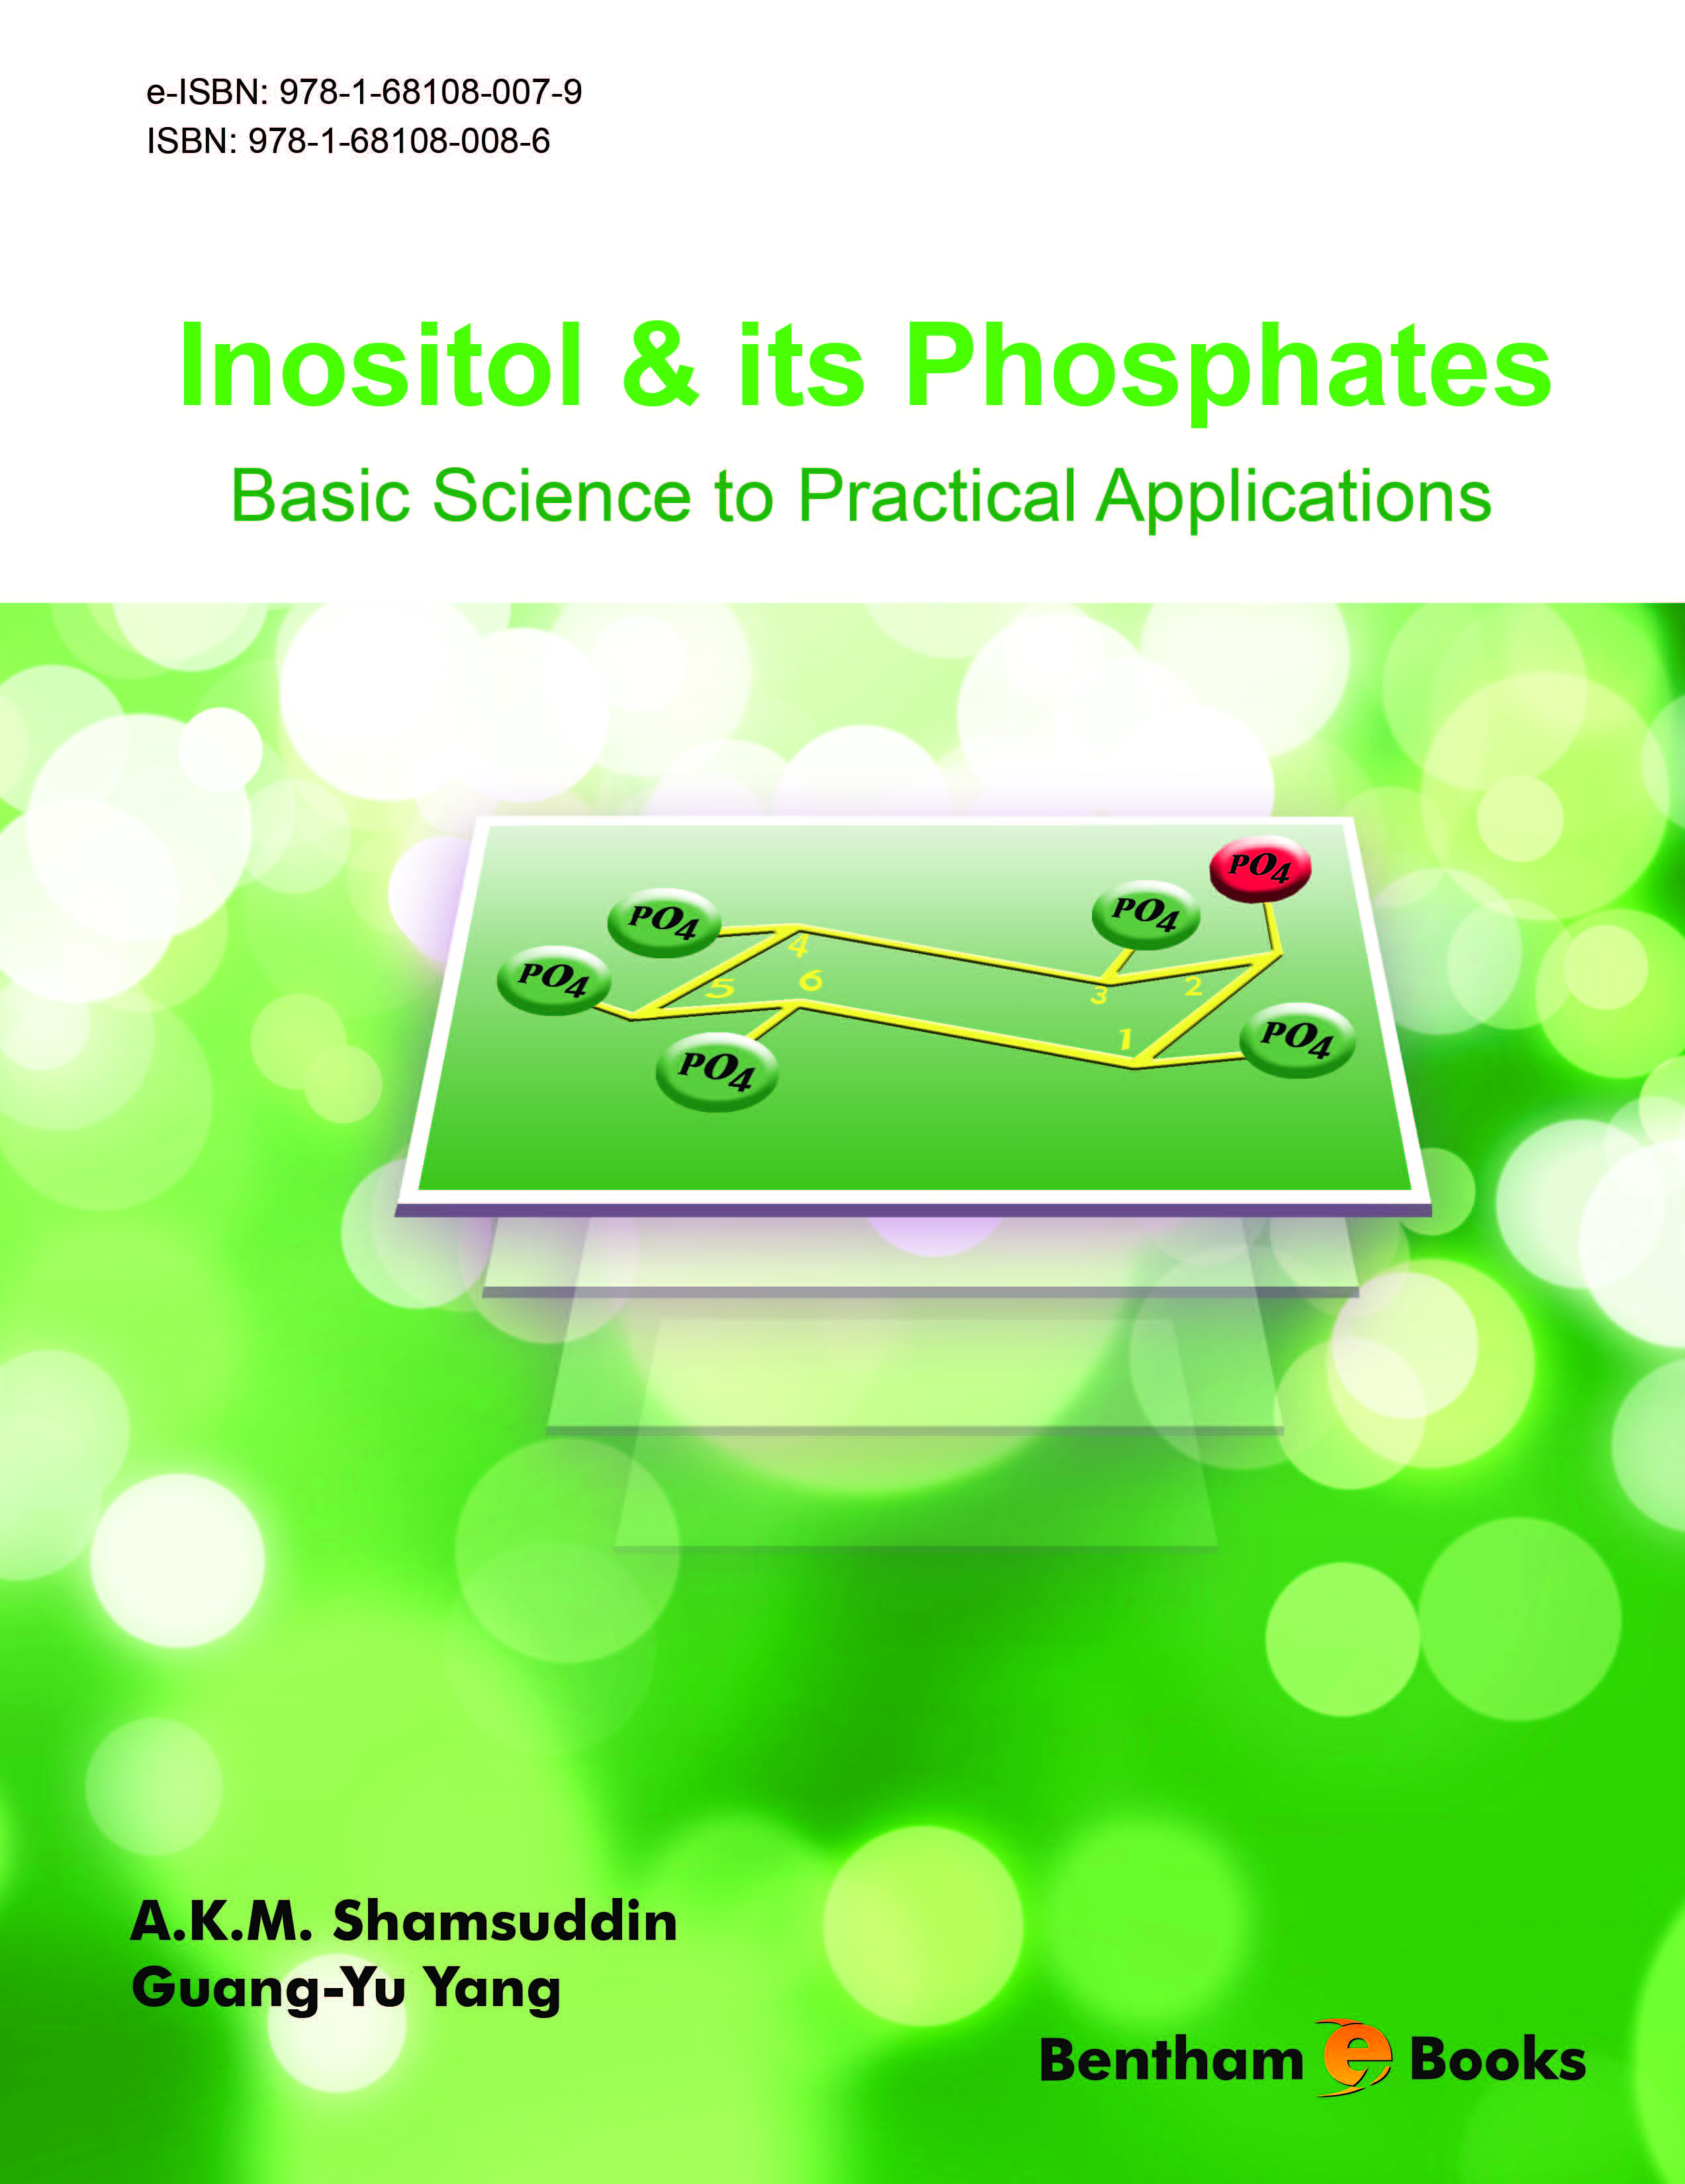 Inositol & its Phosphates: Basic Science to Practical Applications